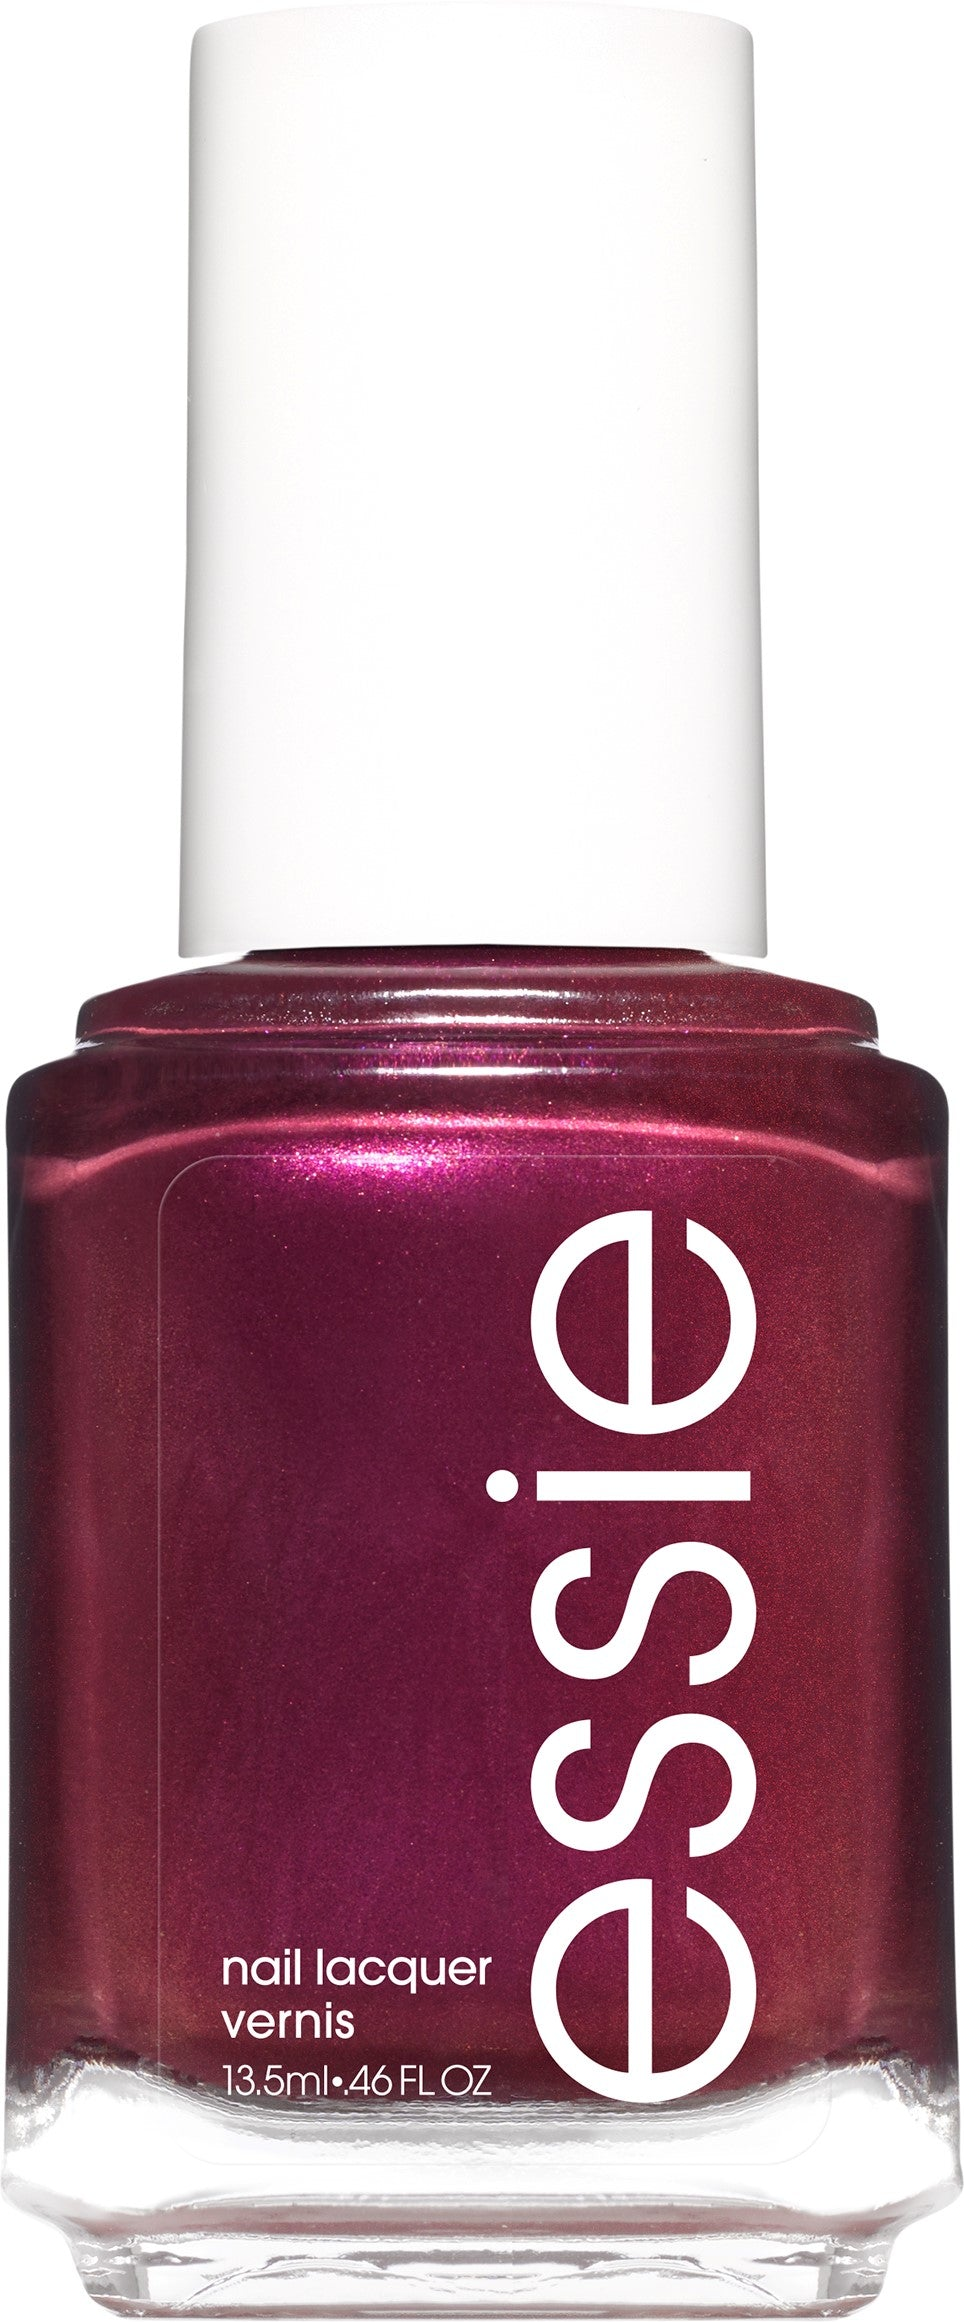 essie nail polish, flying solo collection, mid-tone plum polish, without reservations, 0.46 OZ